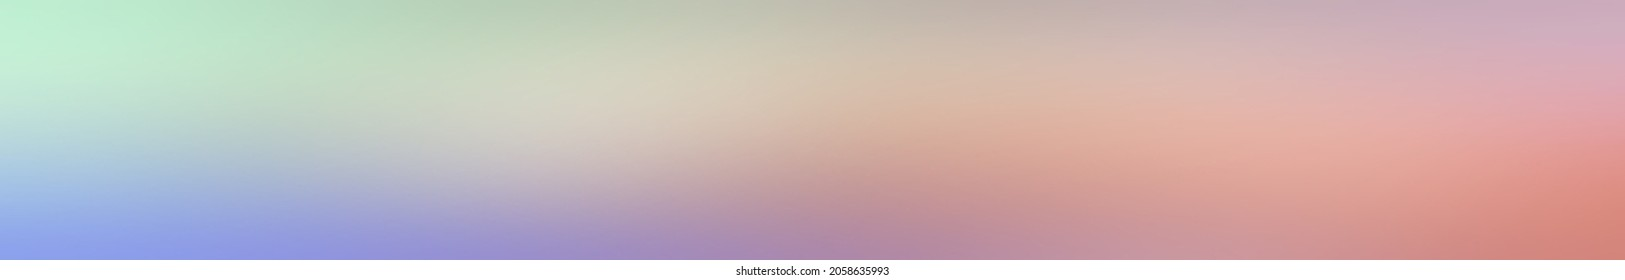 Shining colored illustration in a brand new style light bluish gray, white and blue gray color. Blur gradient